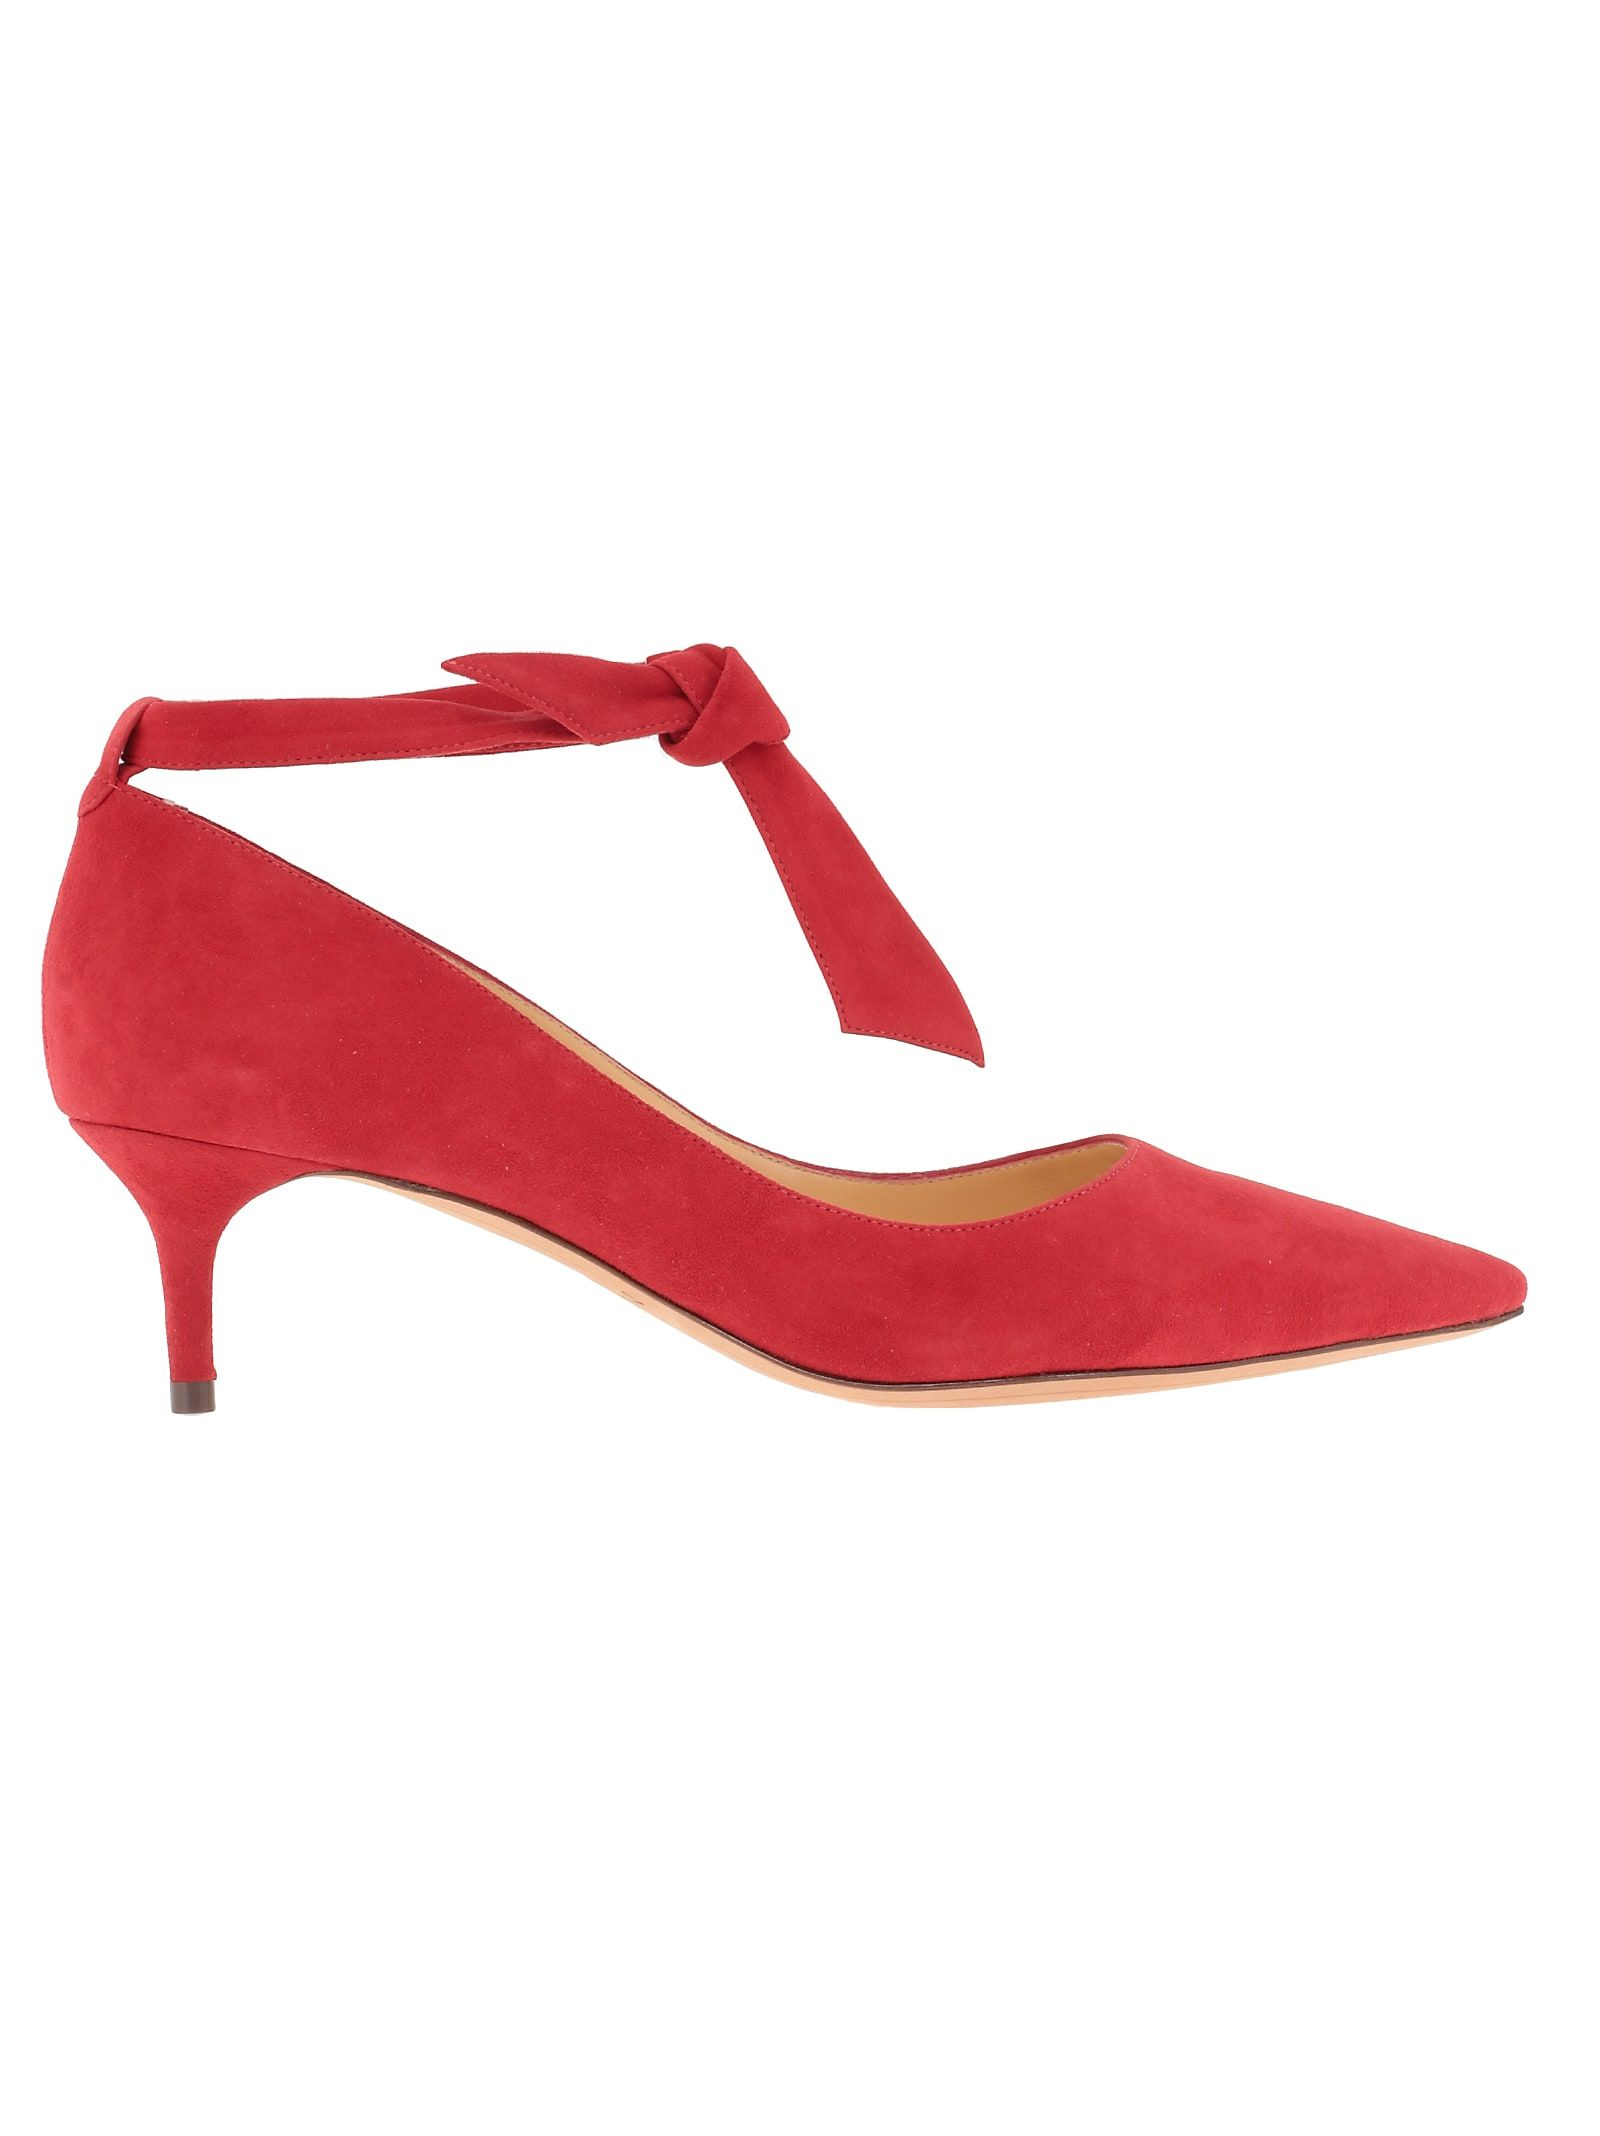 Best Price On The Market At Italist Alexandre Birman Alexandre Birman Clarita New Pump In 2020 With Images Leather Pumps High Heel Shoes Pumps